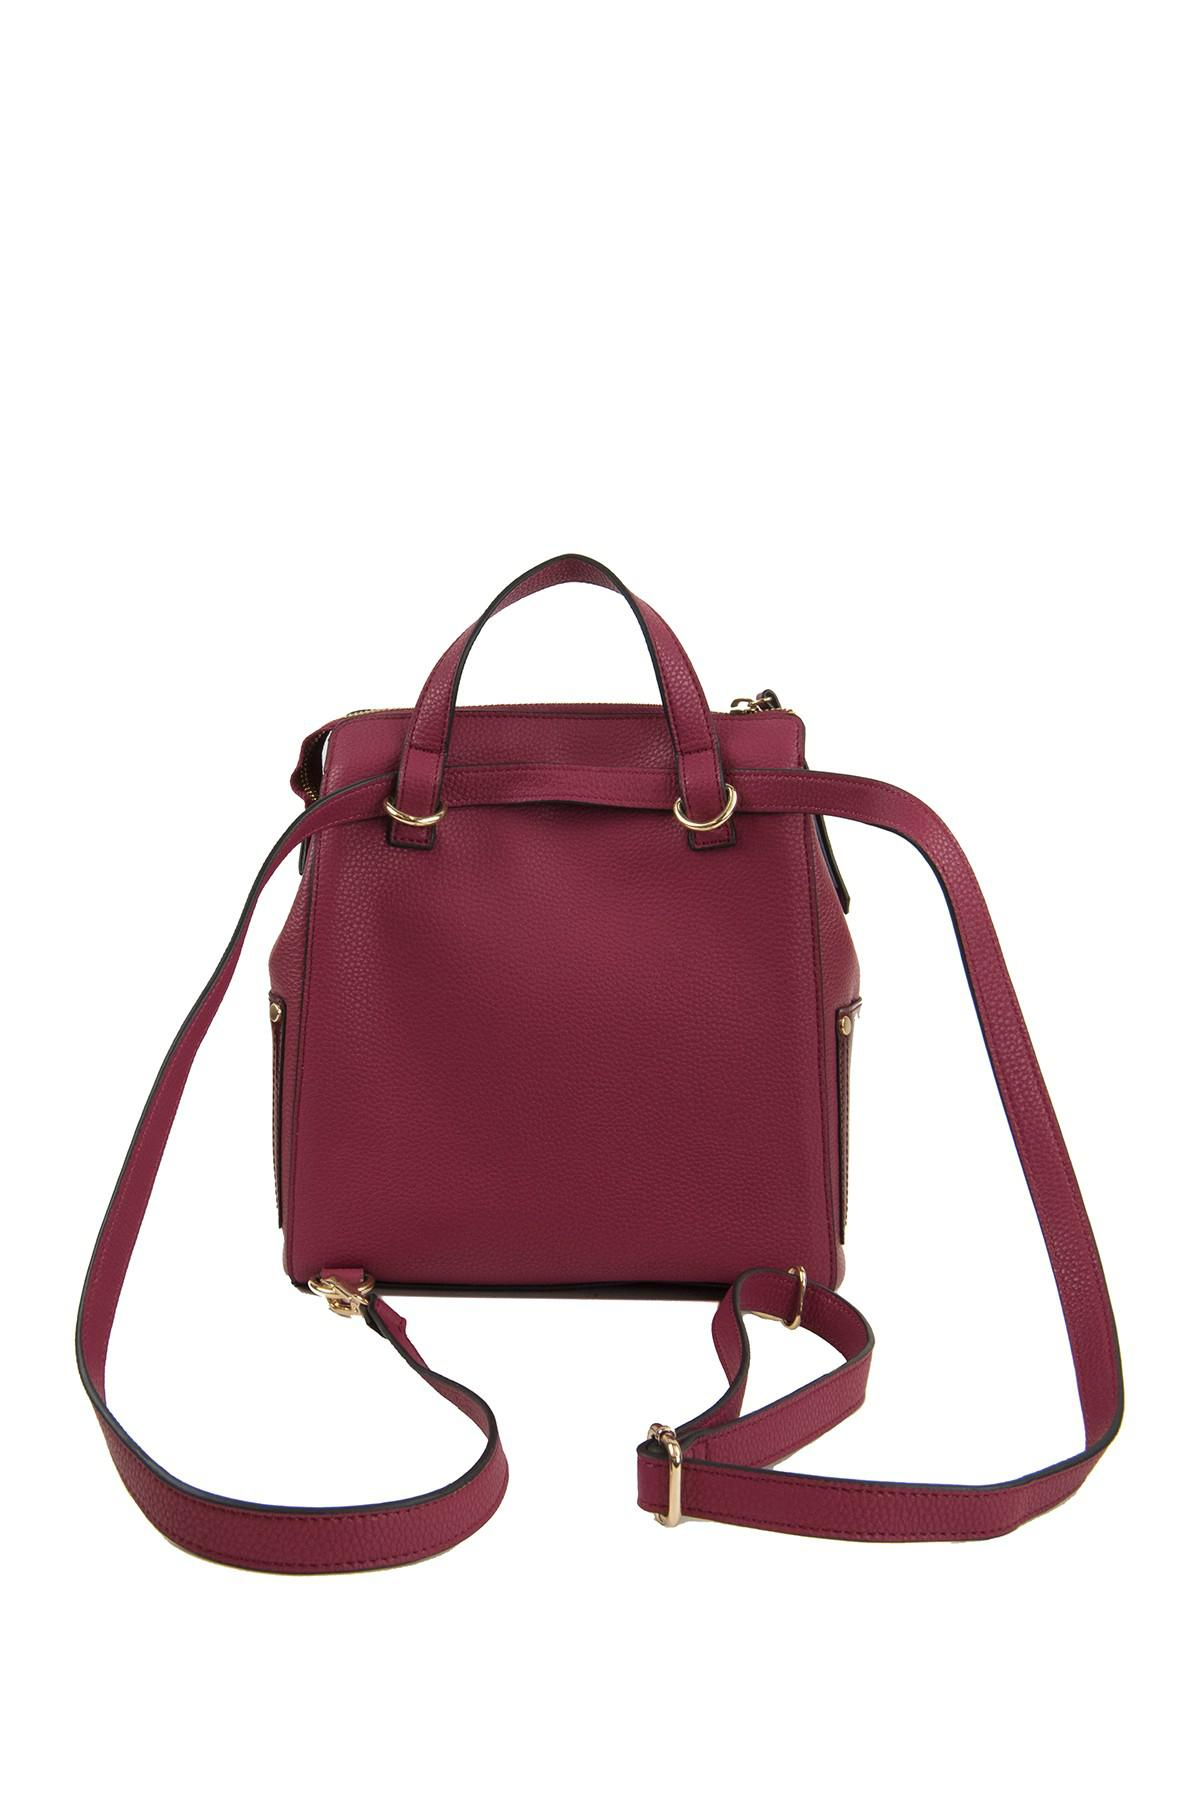 7bb4a96d9d9 Perlina Red Judi Leather Convertible Backpack